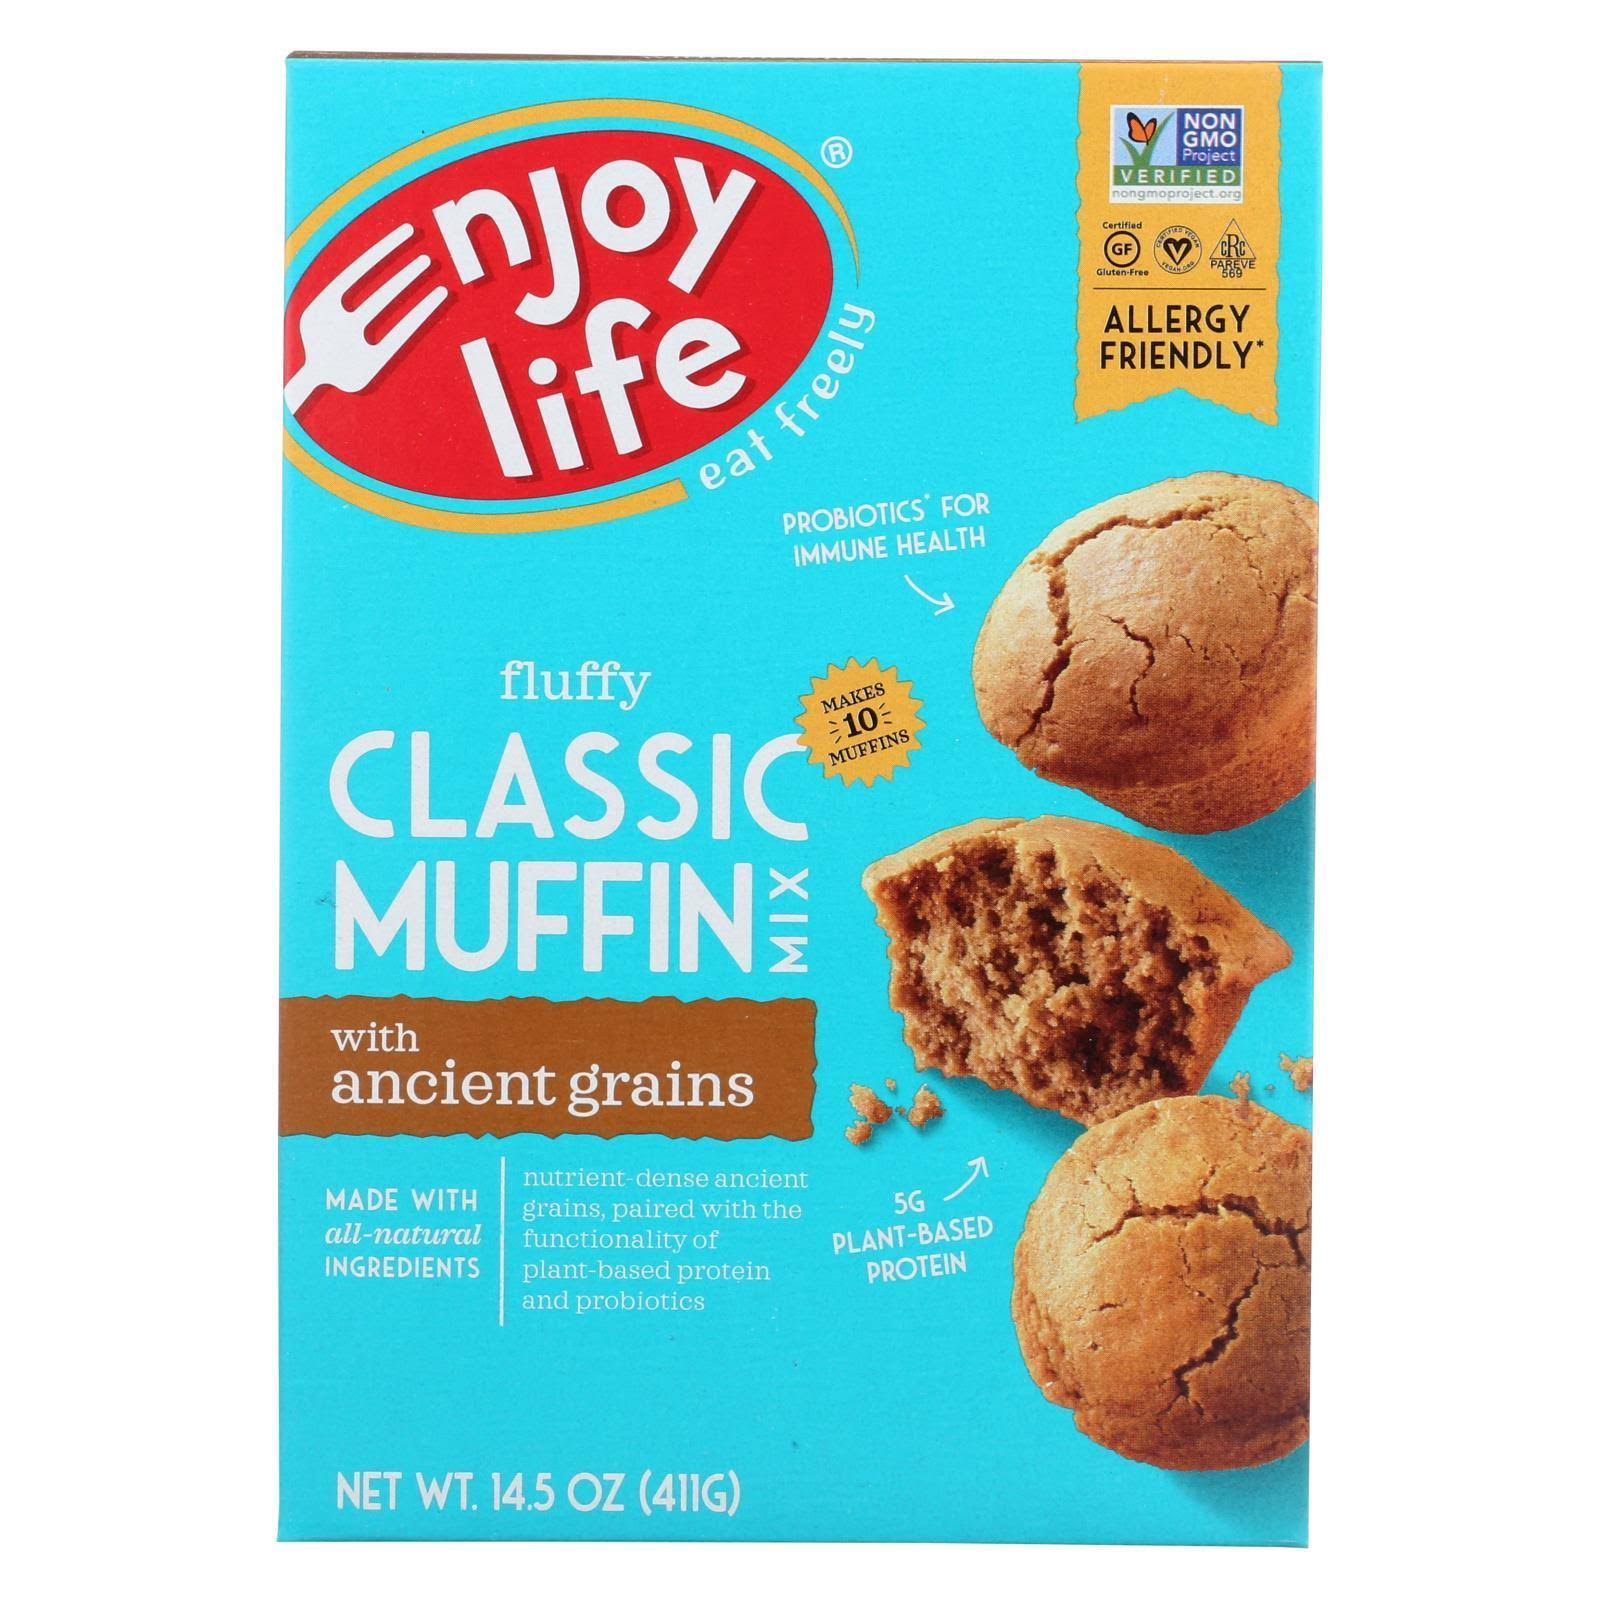 Enjoy Life Muffin Mix - with Ancient Grains, 14.5oz